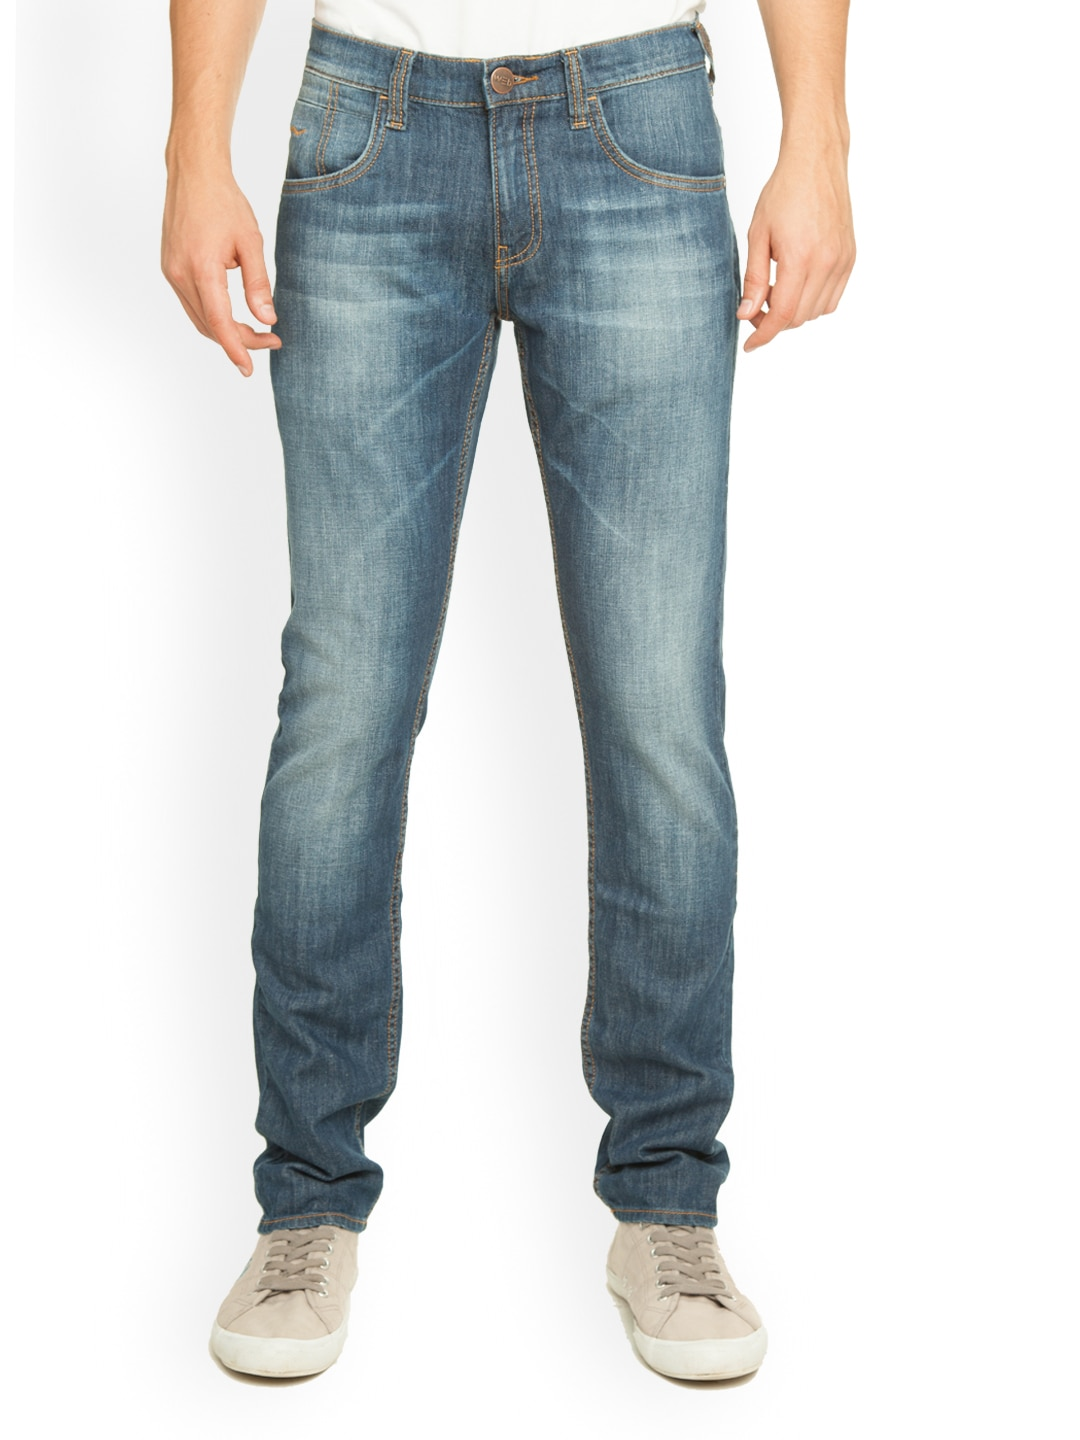 1f4464c224 Buy Web Jeans Italy Men Blue Slim Fit Jeans 7879817 for online in ...